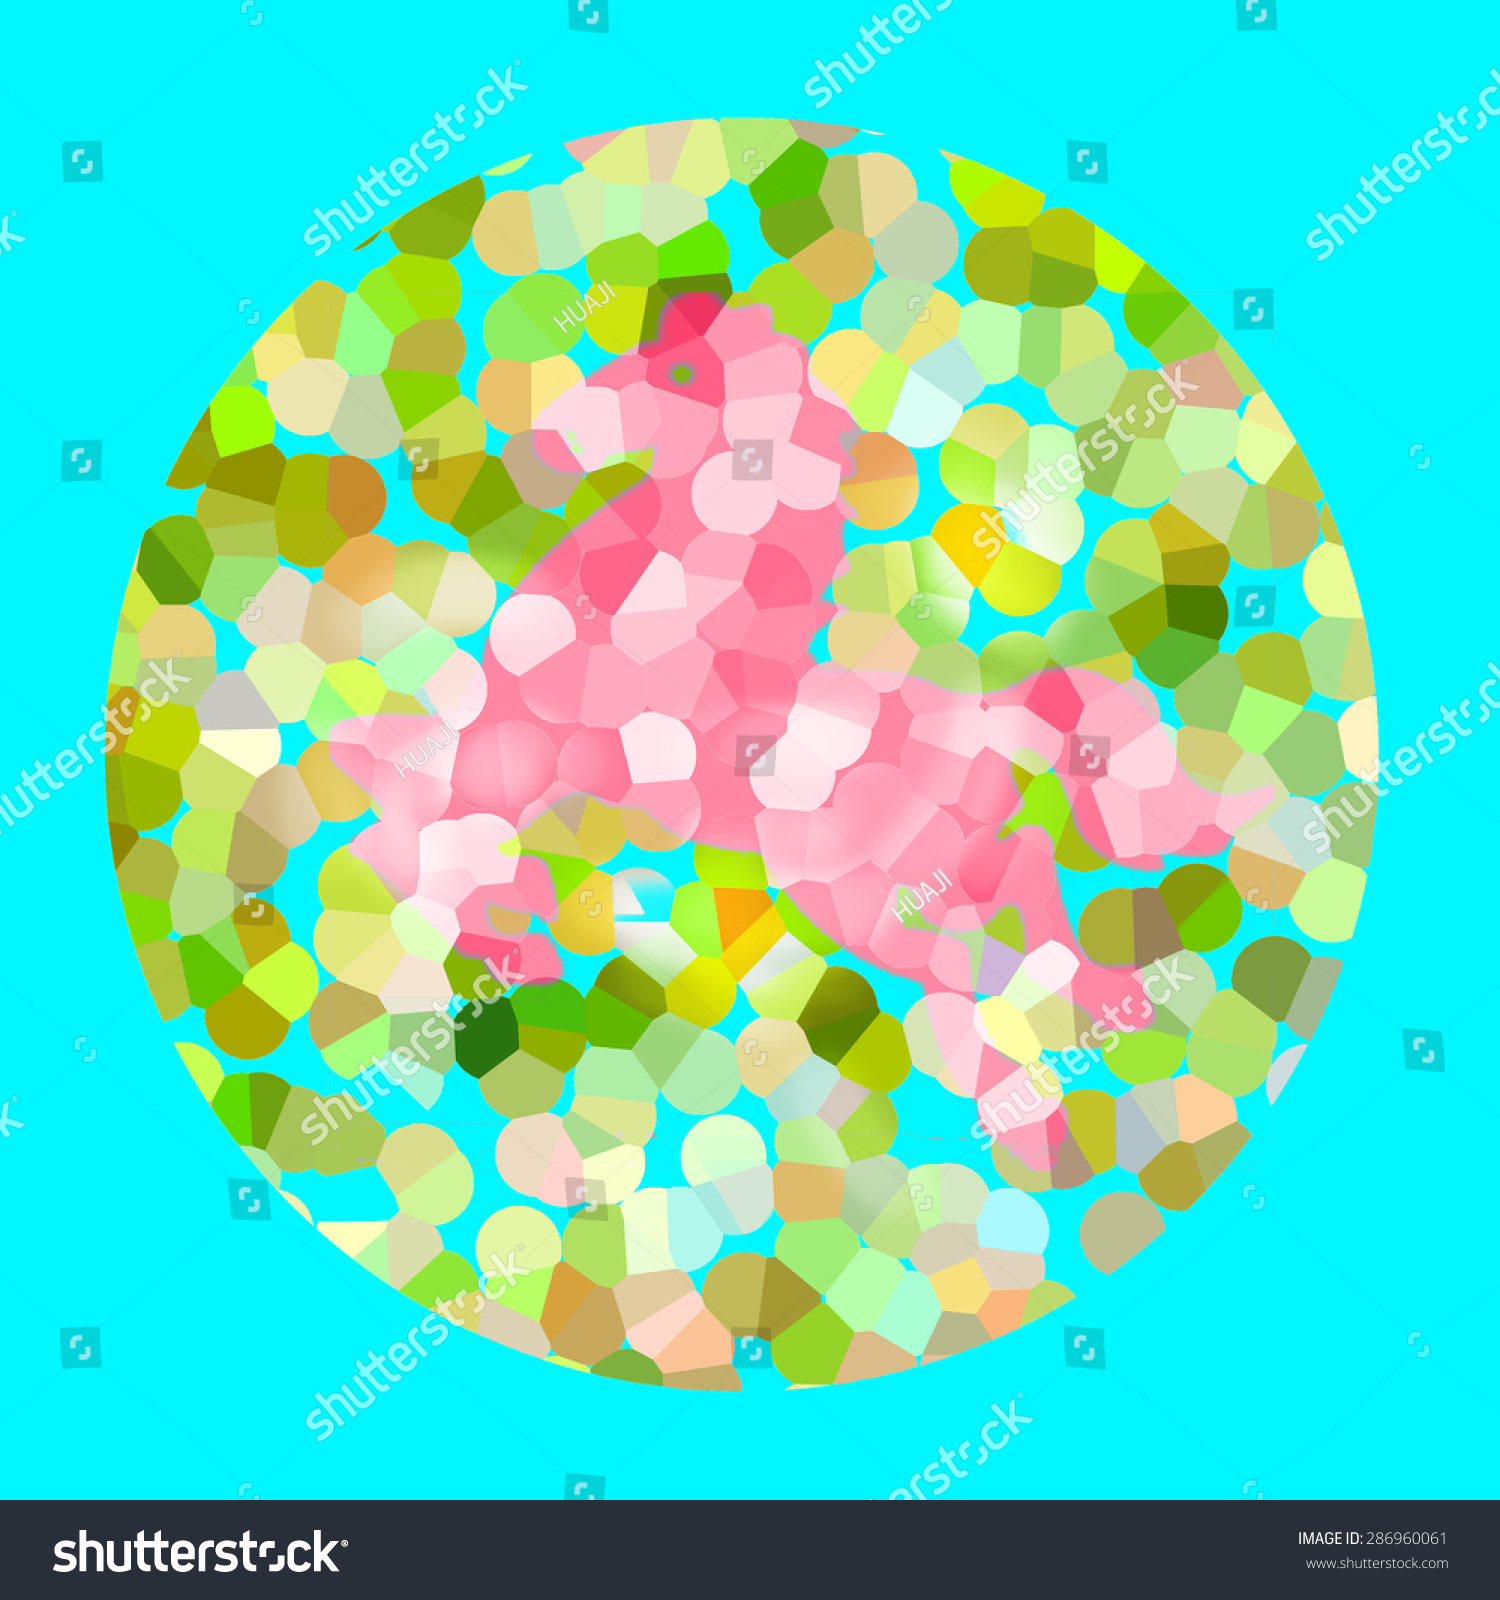 Color Blind Test Horse Stock Illustration 286960061 - Shutterstock